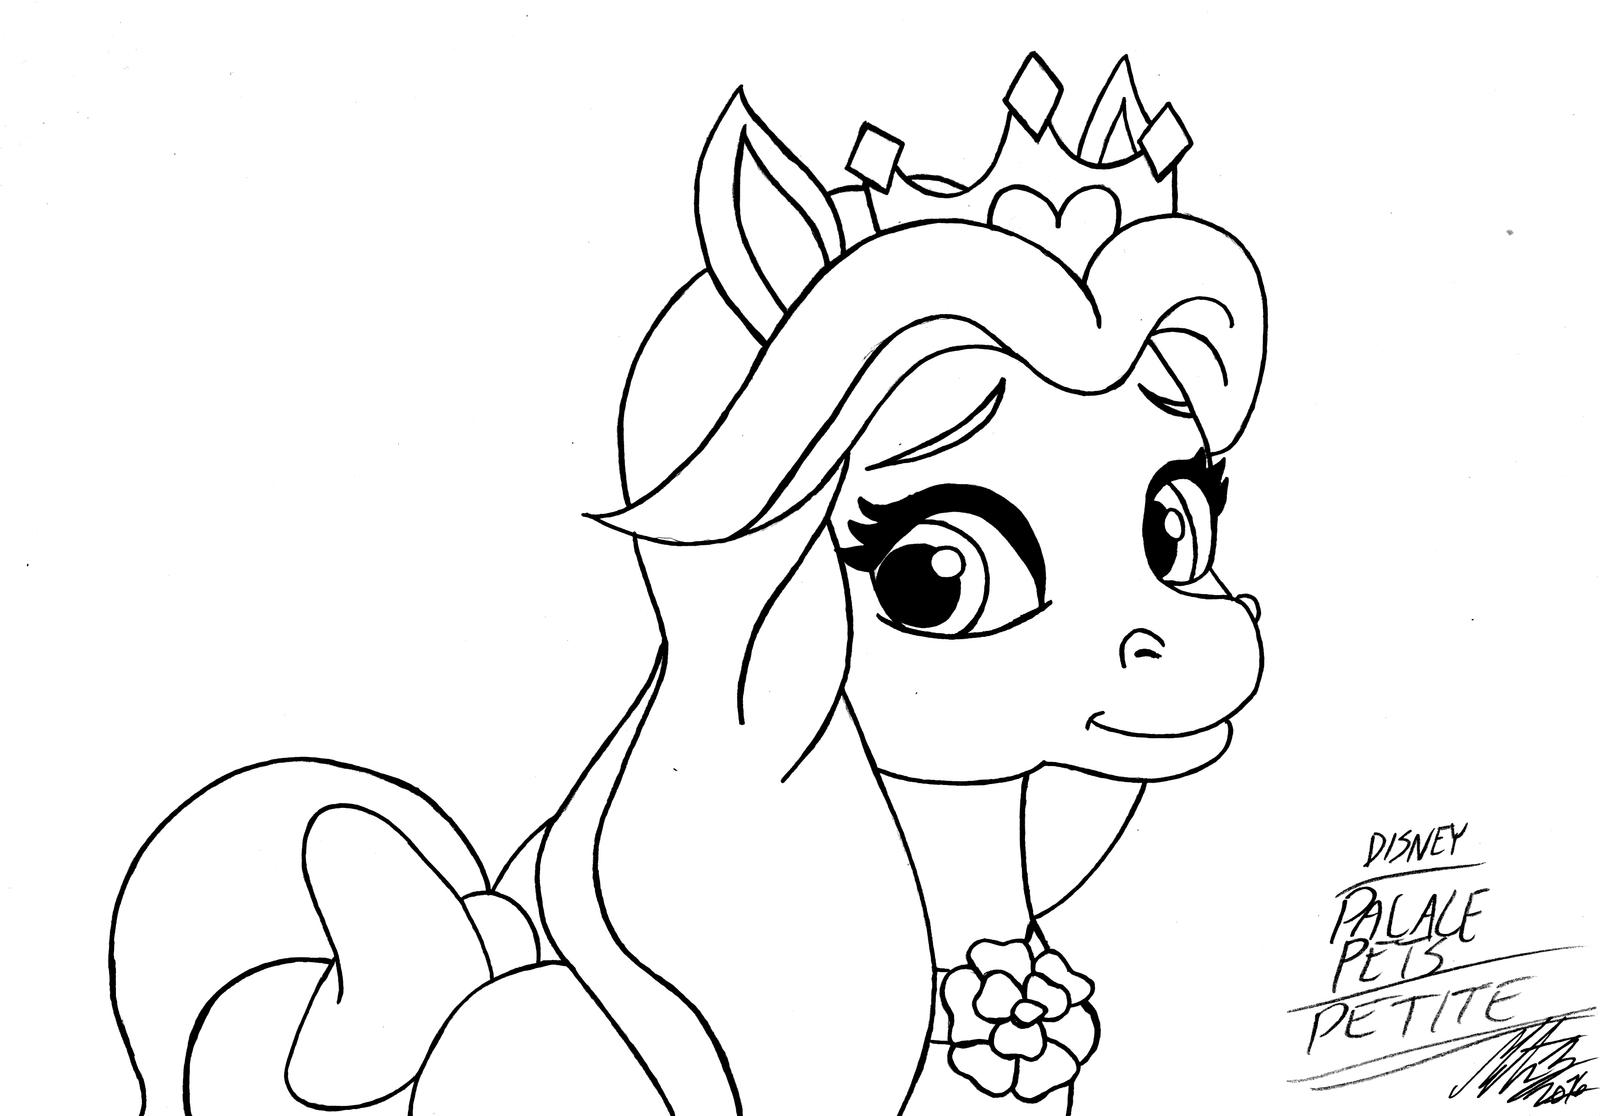 palace pets pictures disneys princess palace pets free coloring pages and palace pets pictures